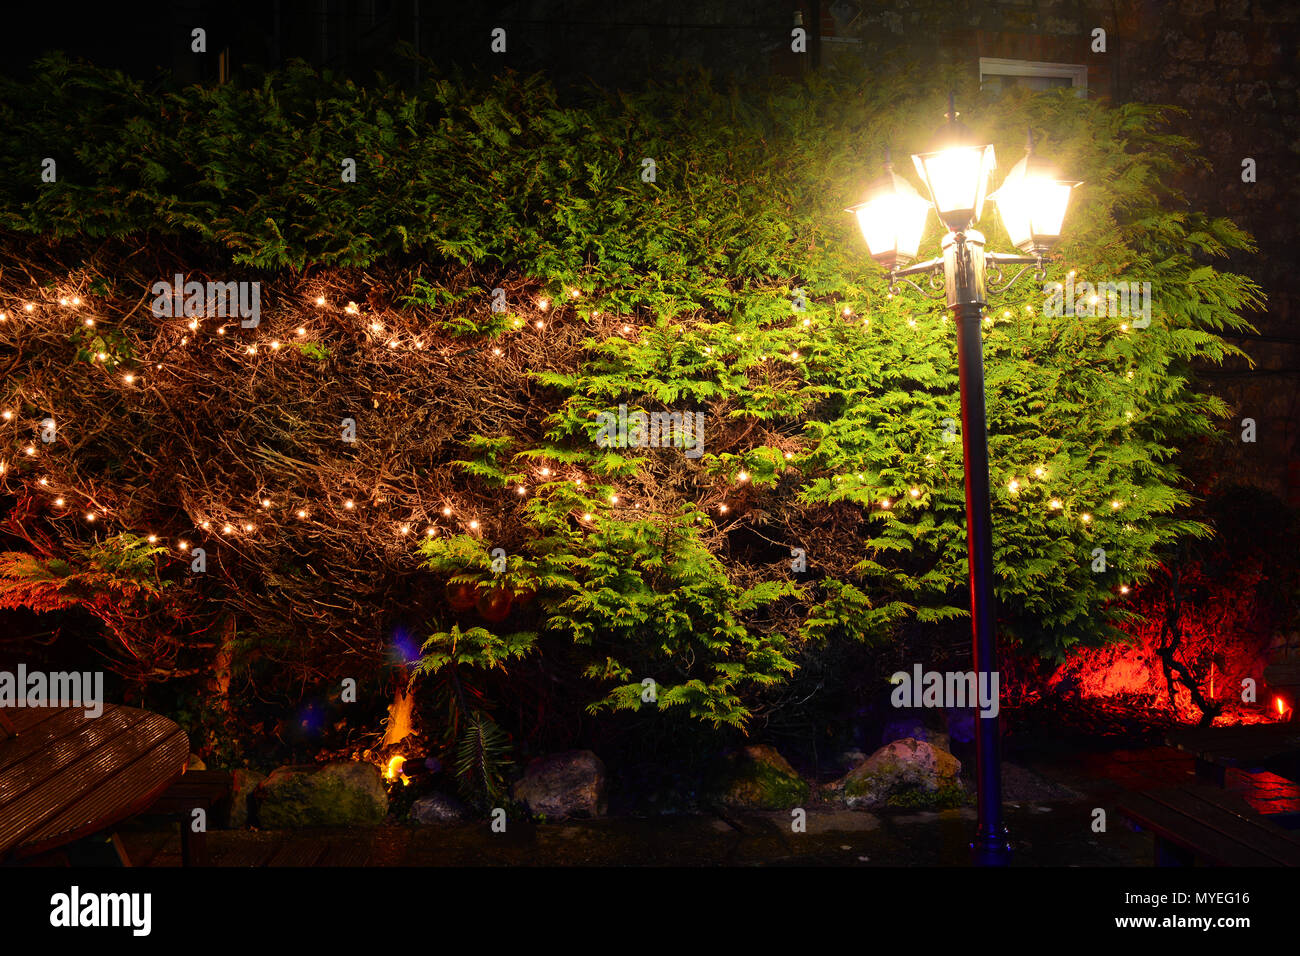 Fairy Lights And An Old Street Lamp Illuminates Bushes And A Picnic Table  In An Oudoor Garden At Night.